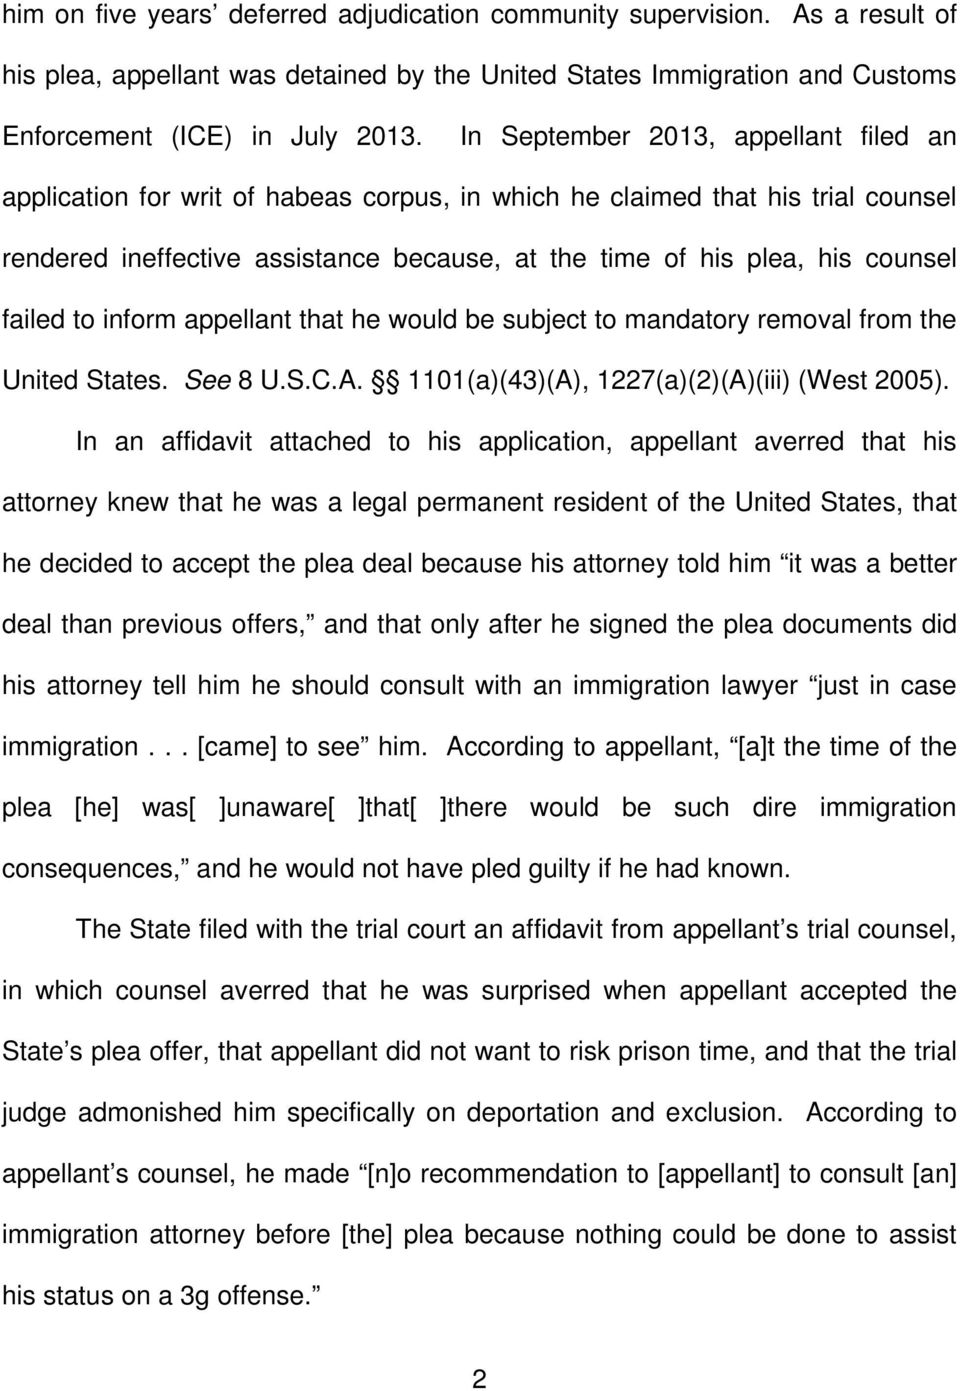 failed to inform appellant that he would be subject to mandatory removal from the United States. See 8 U.S.C.A. 1101(a)(43)(A), 1227(a)(2)(A)(iii) (West 2005).